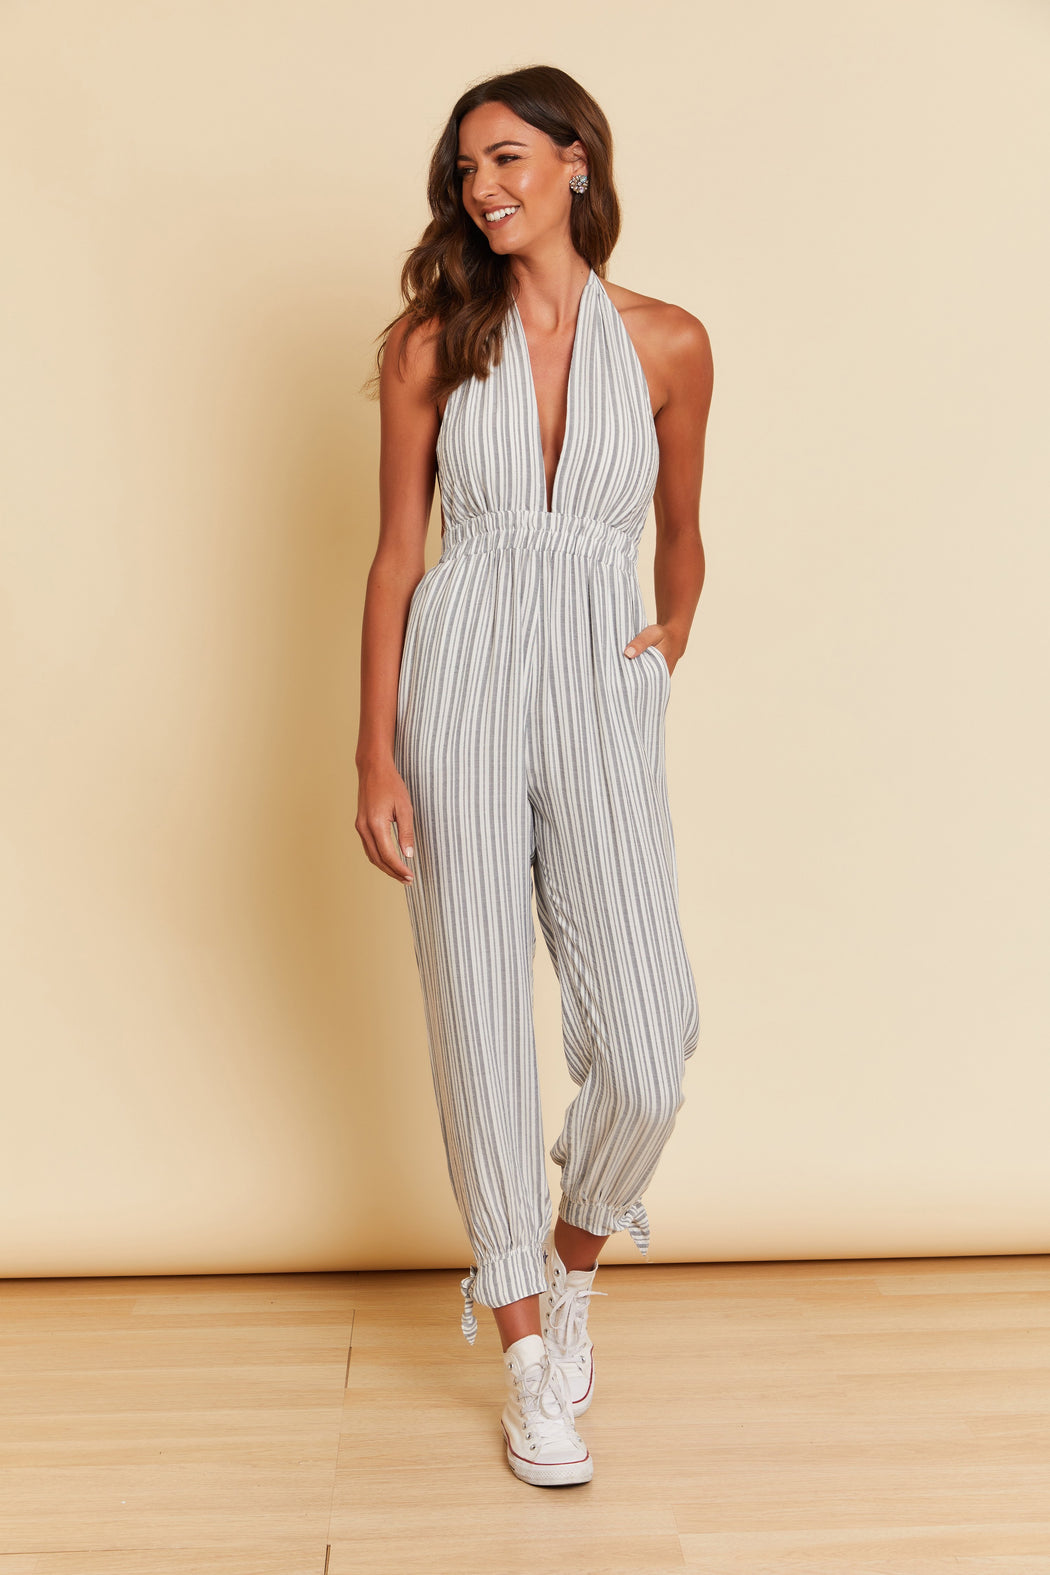 Amie Striped Jumpsuit - wearNYLA